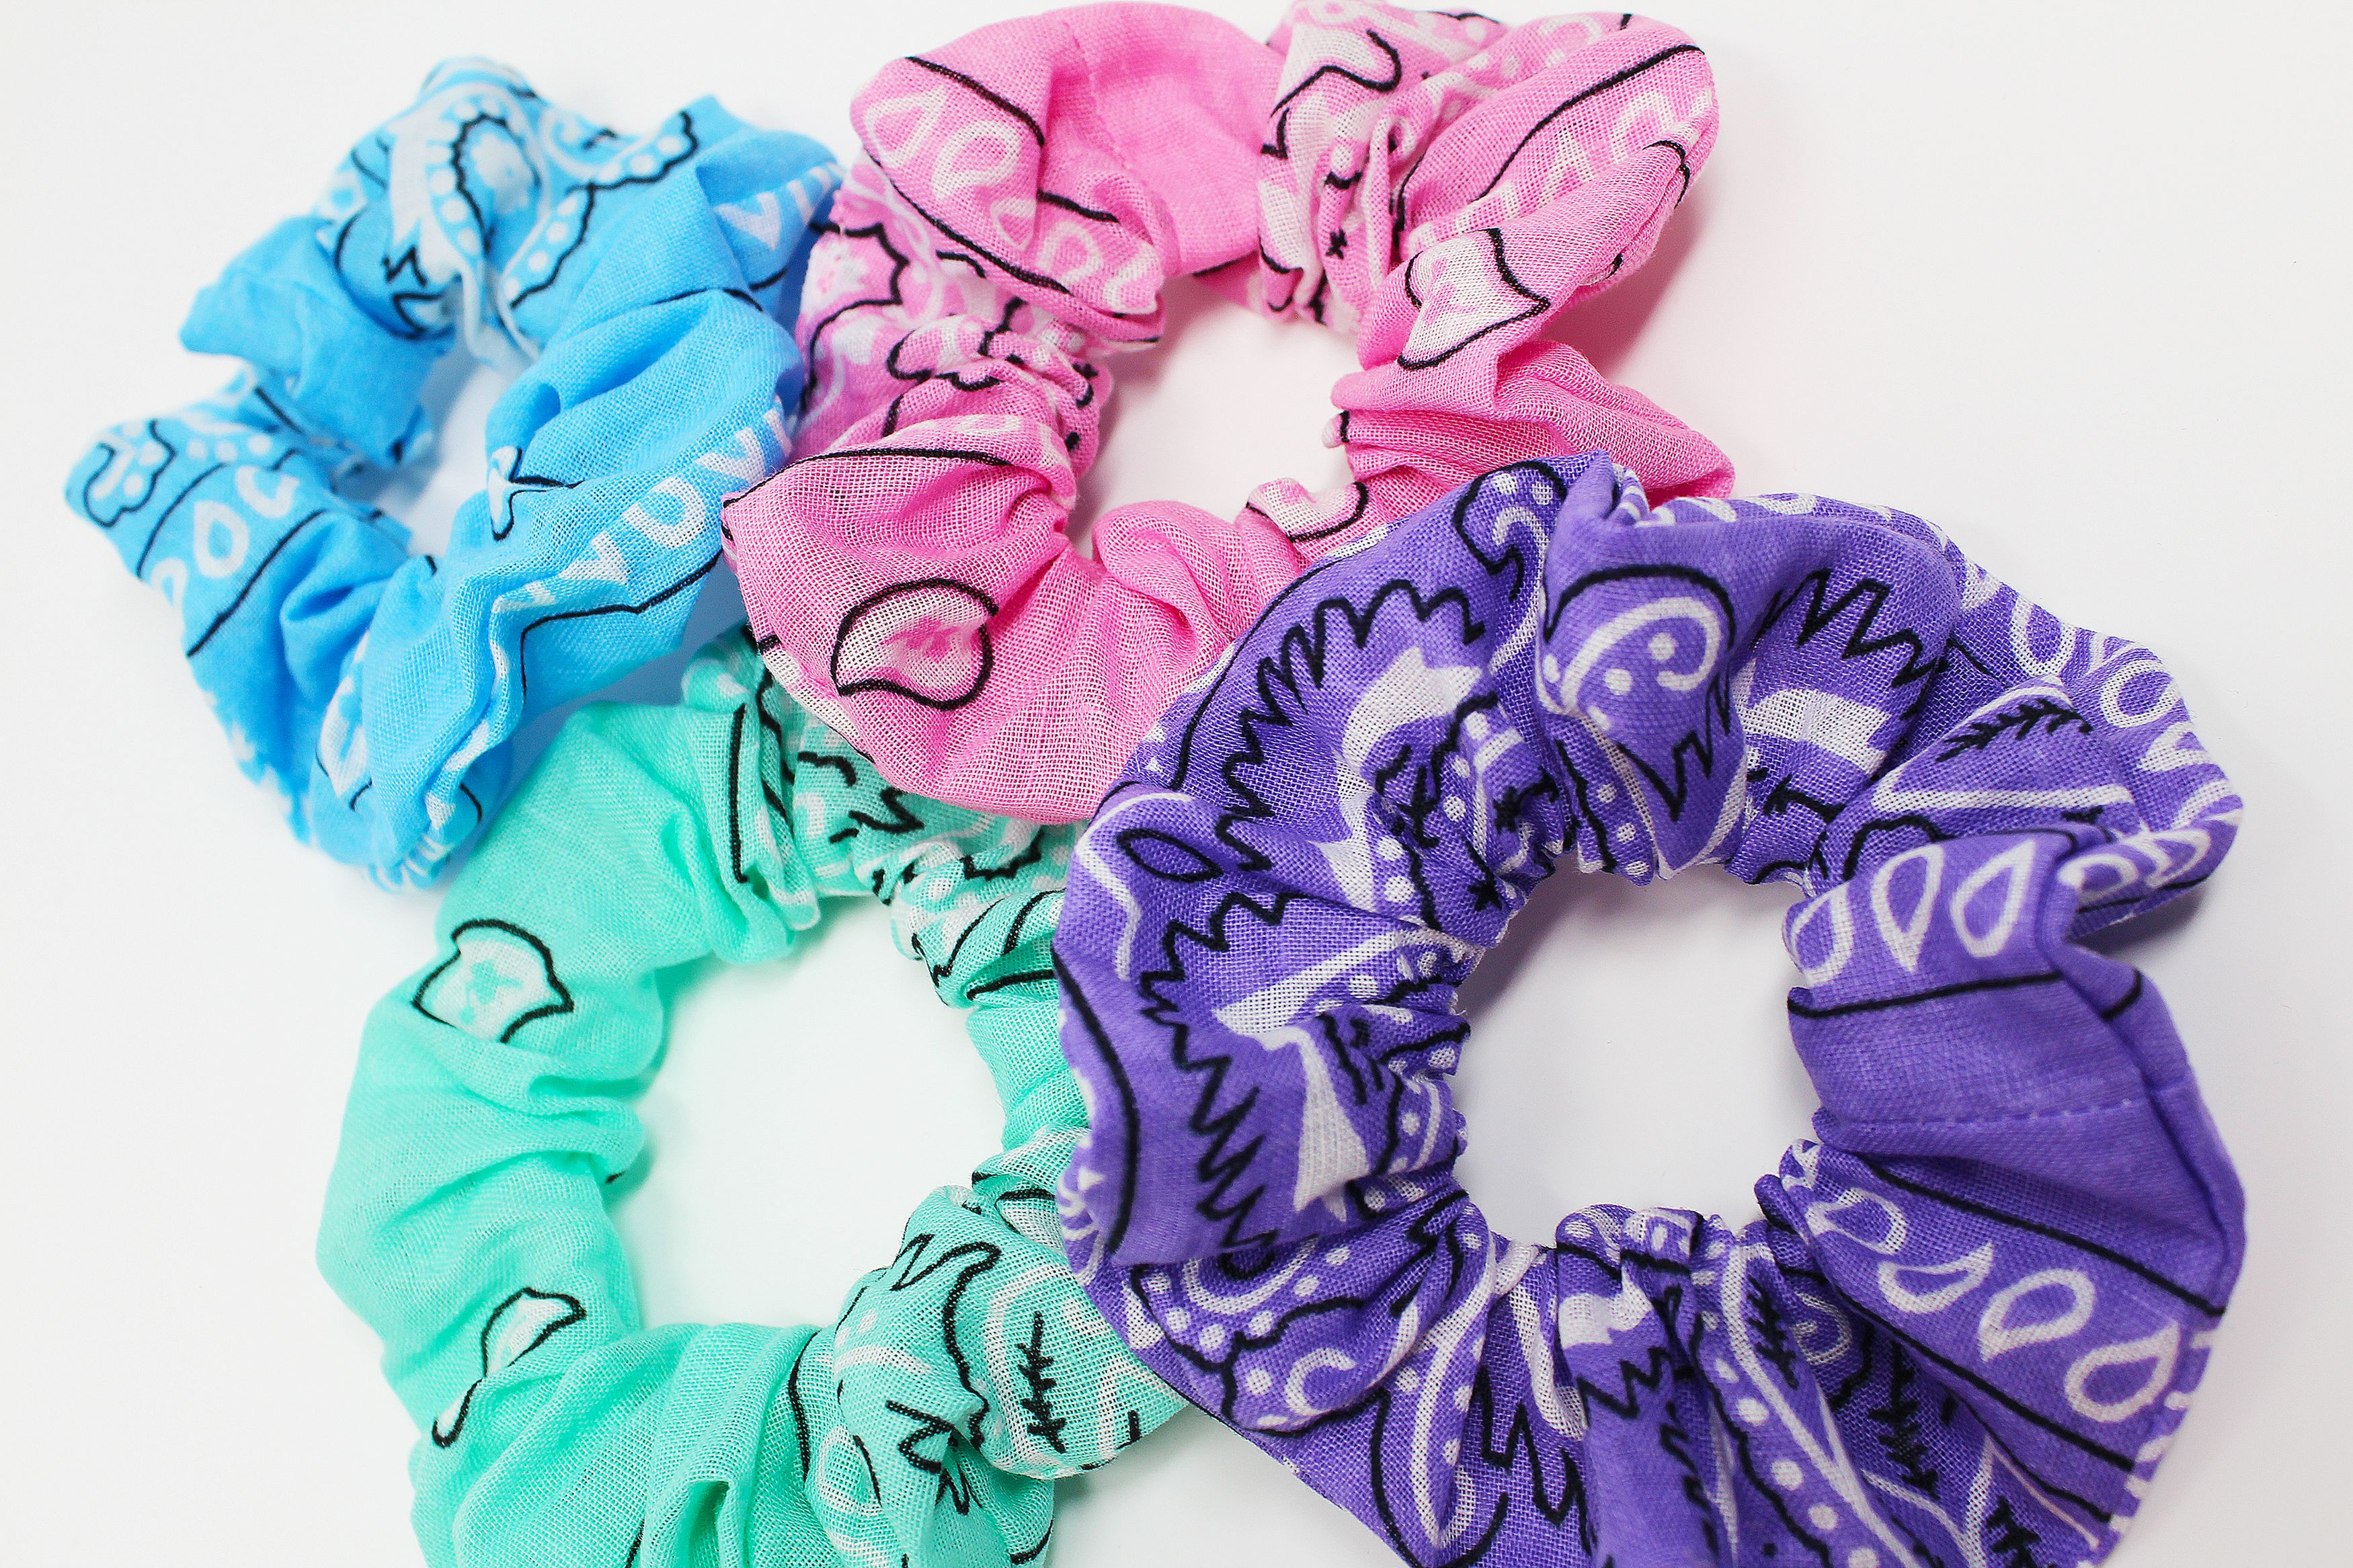 Bandana Print Hair Scrunchies, Hair Scrunchy, Bandana Hair Ties, Gentle Hair Elastic, Hair Accessories, Favors, Scrunchie Gift Set, Handmade #hairscrunchie